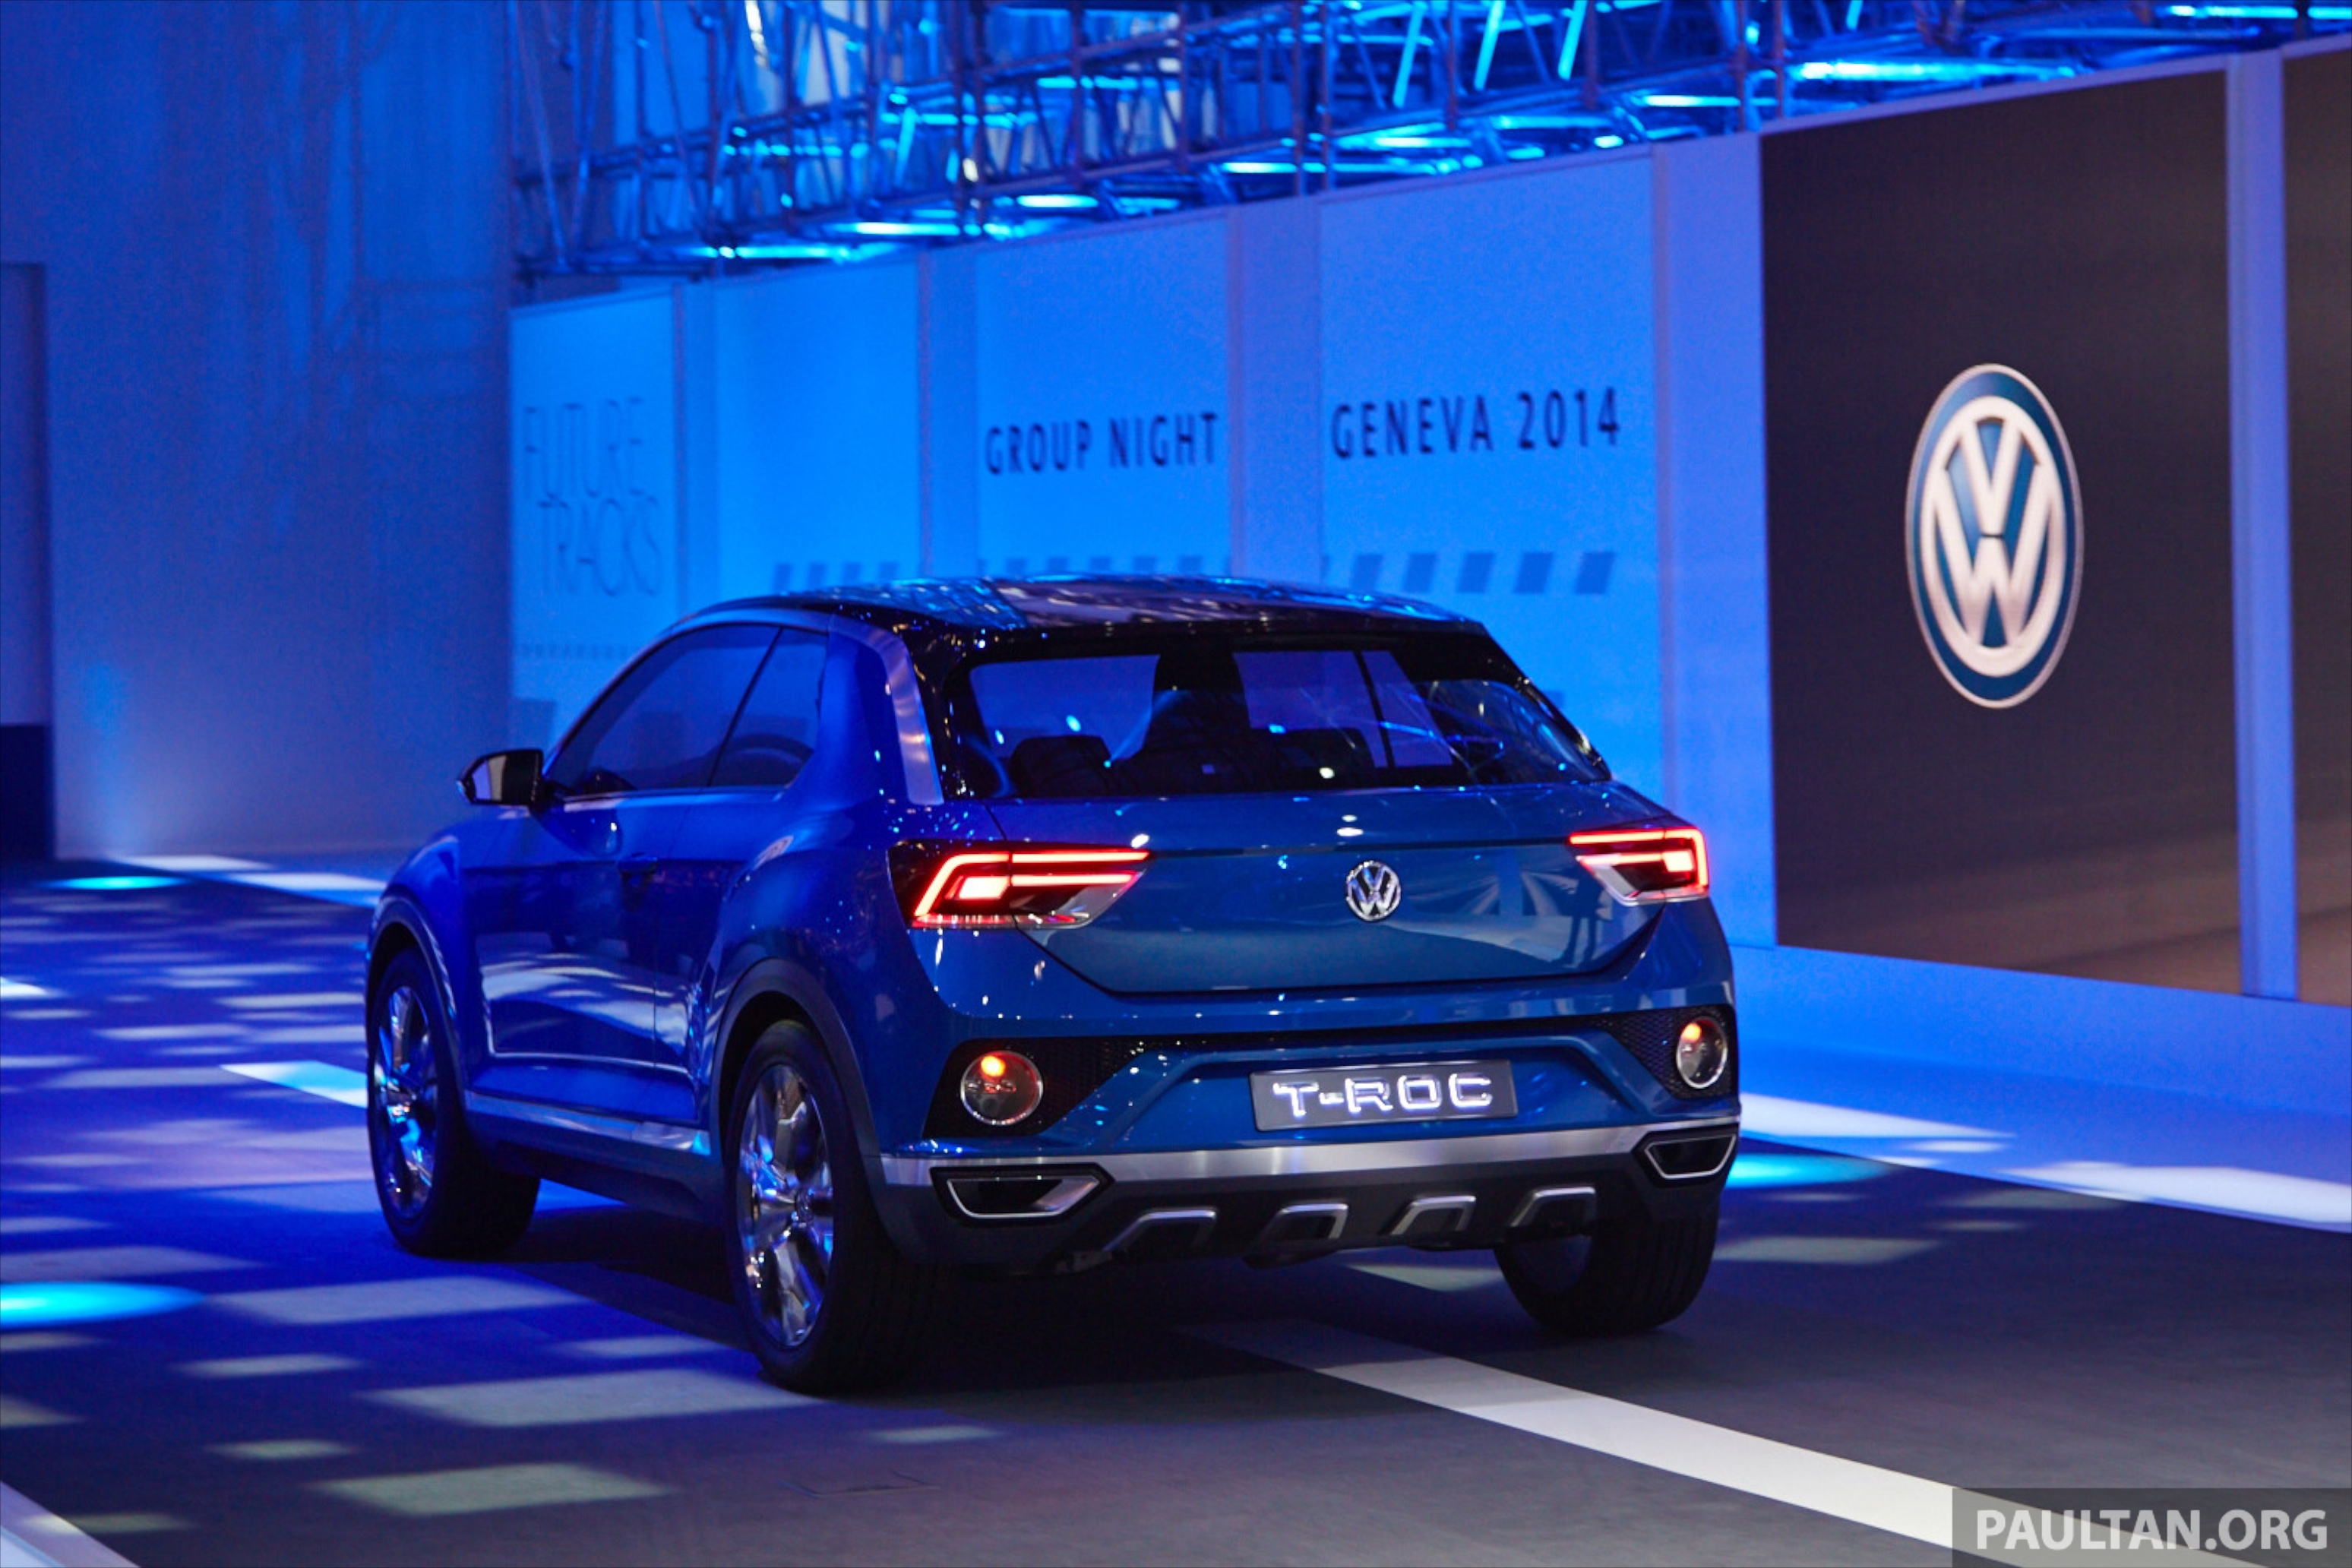 2018 Vw Suv >> Volkswagen T-ROC Concept previews upcoming SUV Image 232470